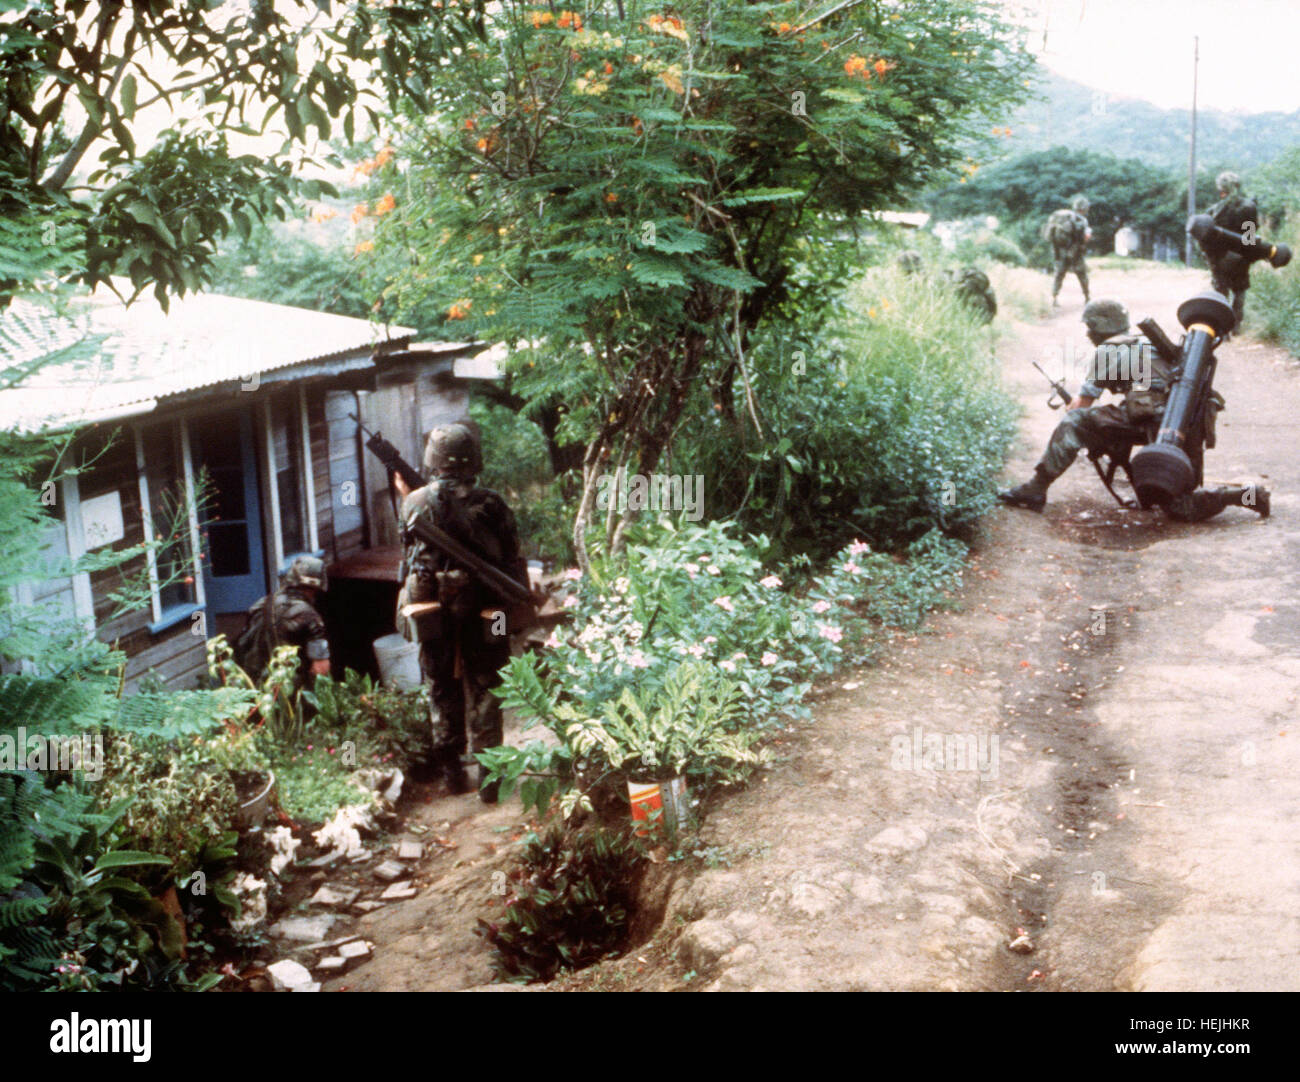 Members of the 82nd Airborne Division approach a building while on patrol during Operation URGENT FURY.  Two of - Stock Image